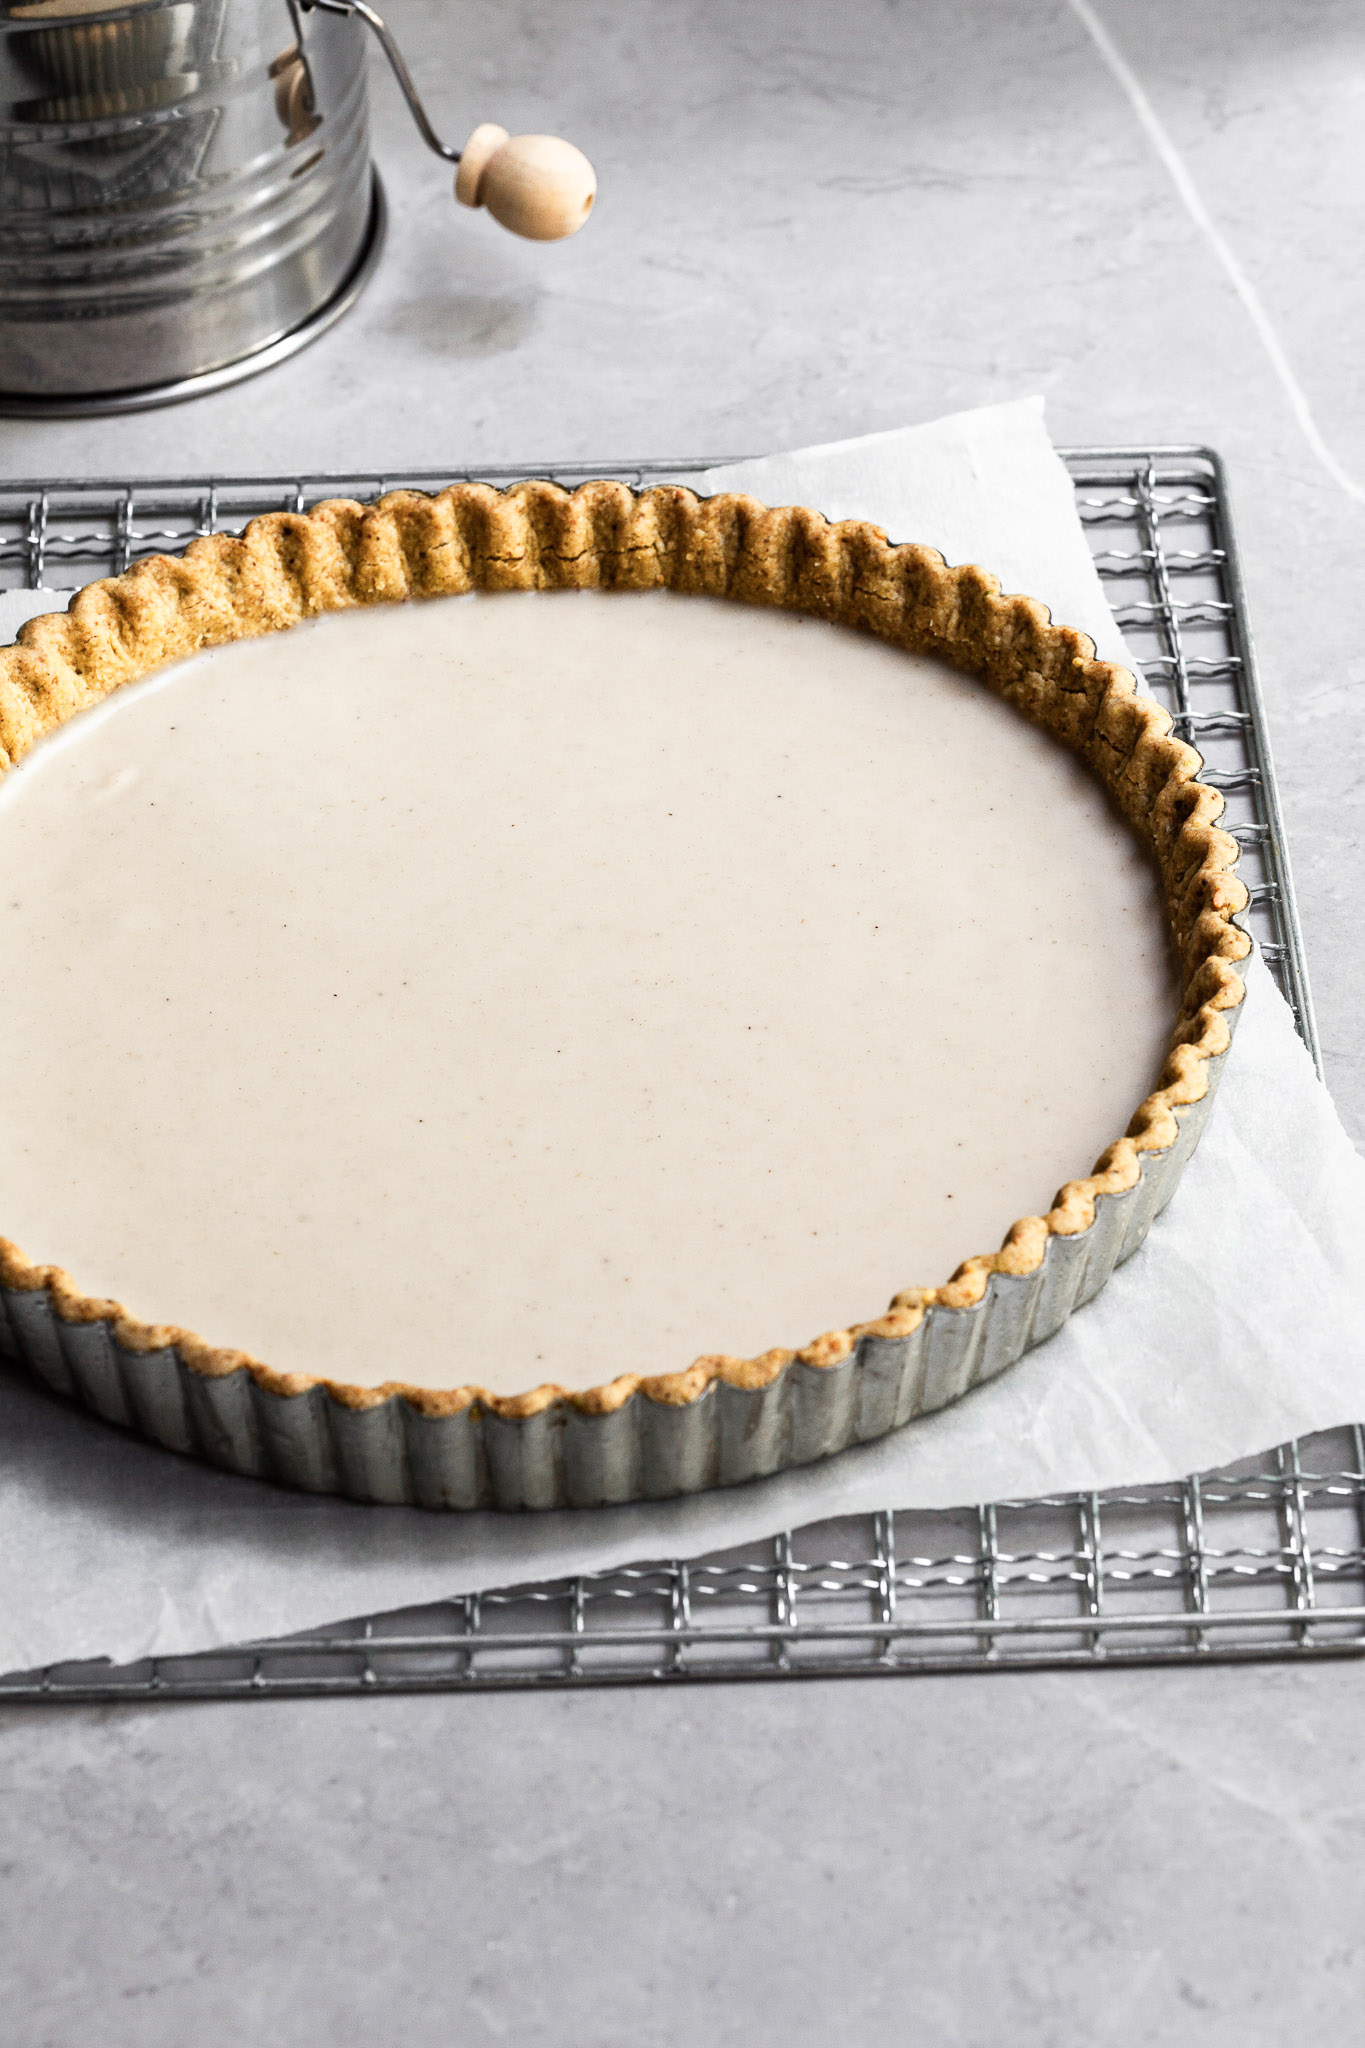 Round tart crust filled with a layer of white chocolate ganache